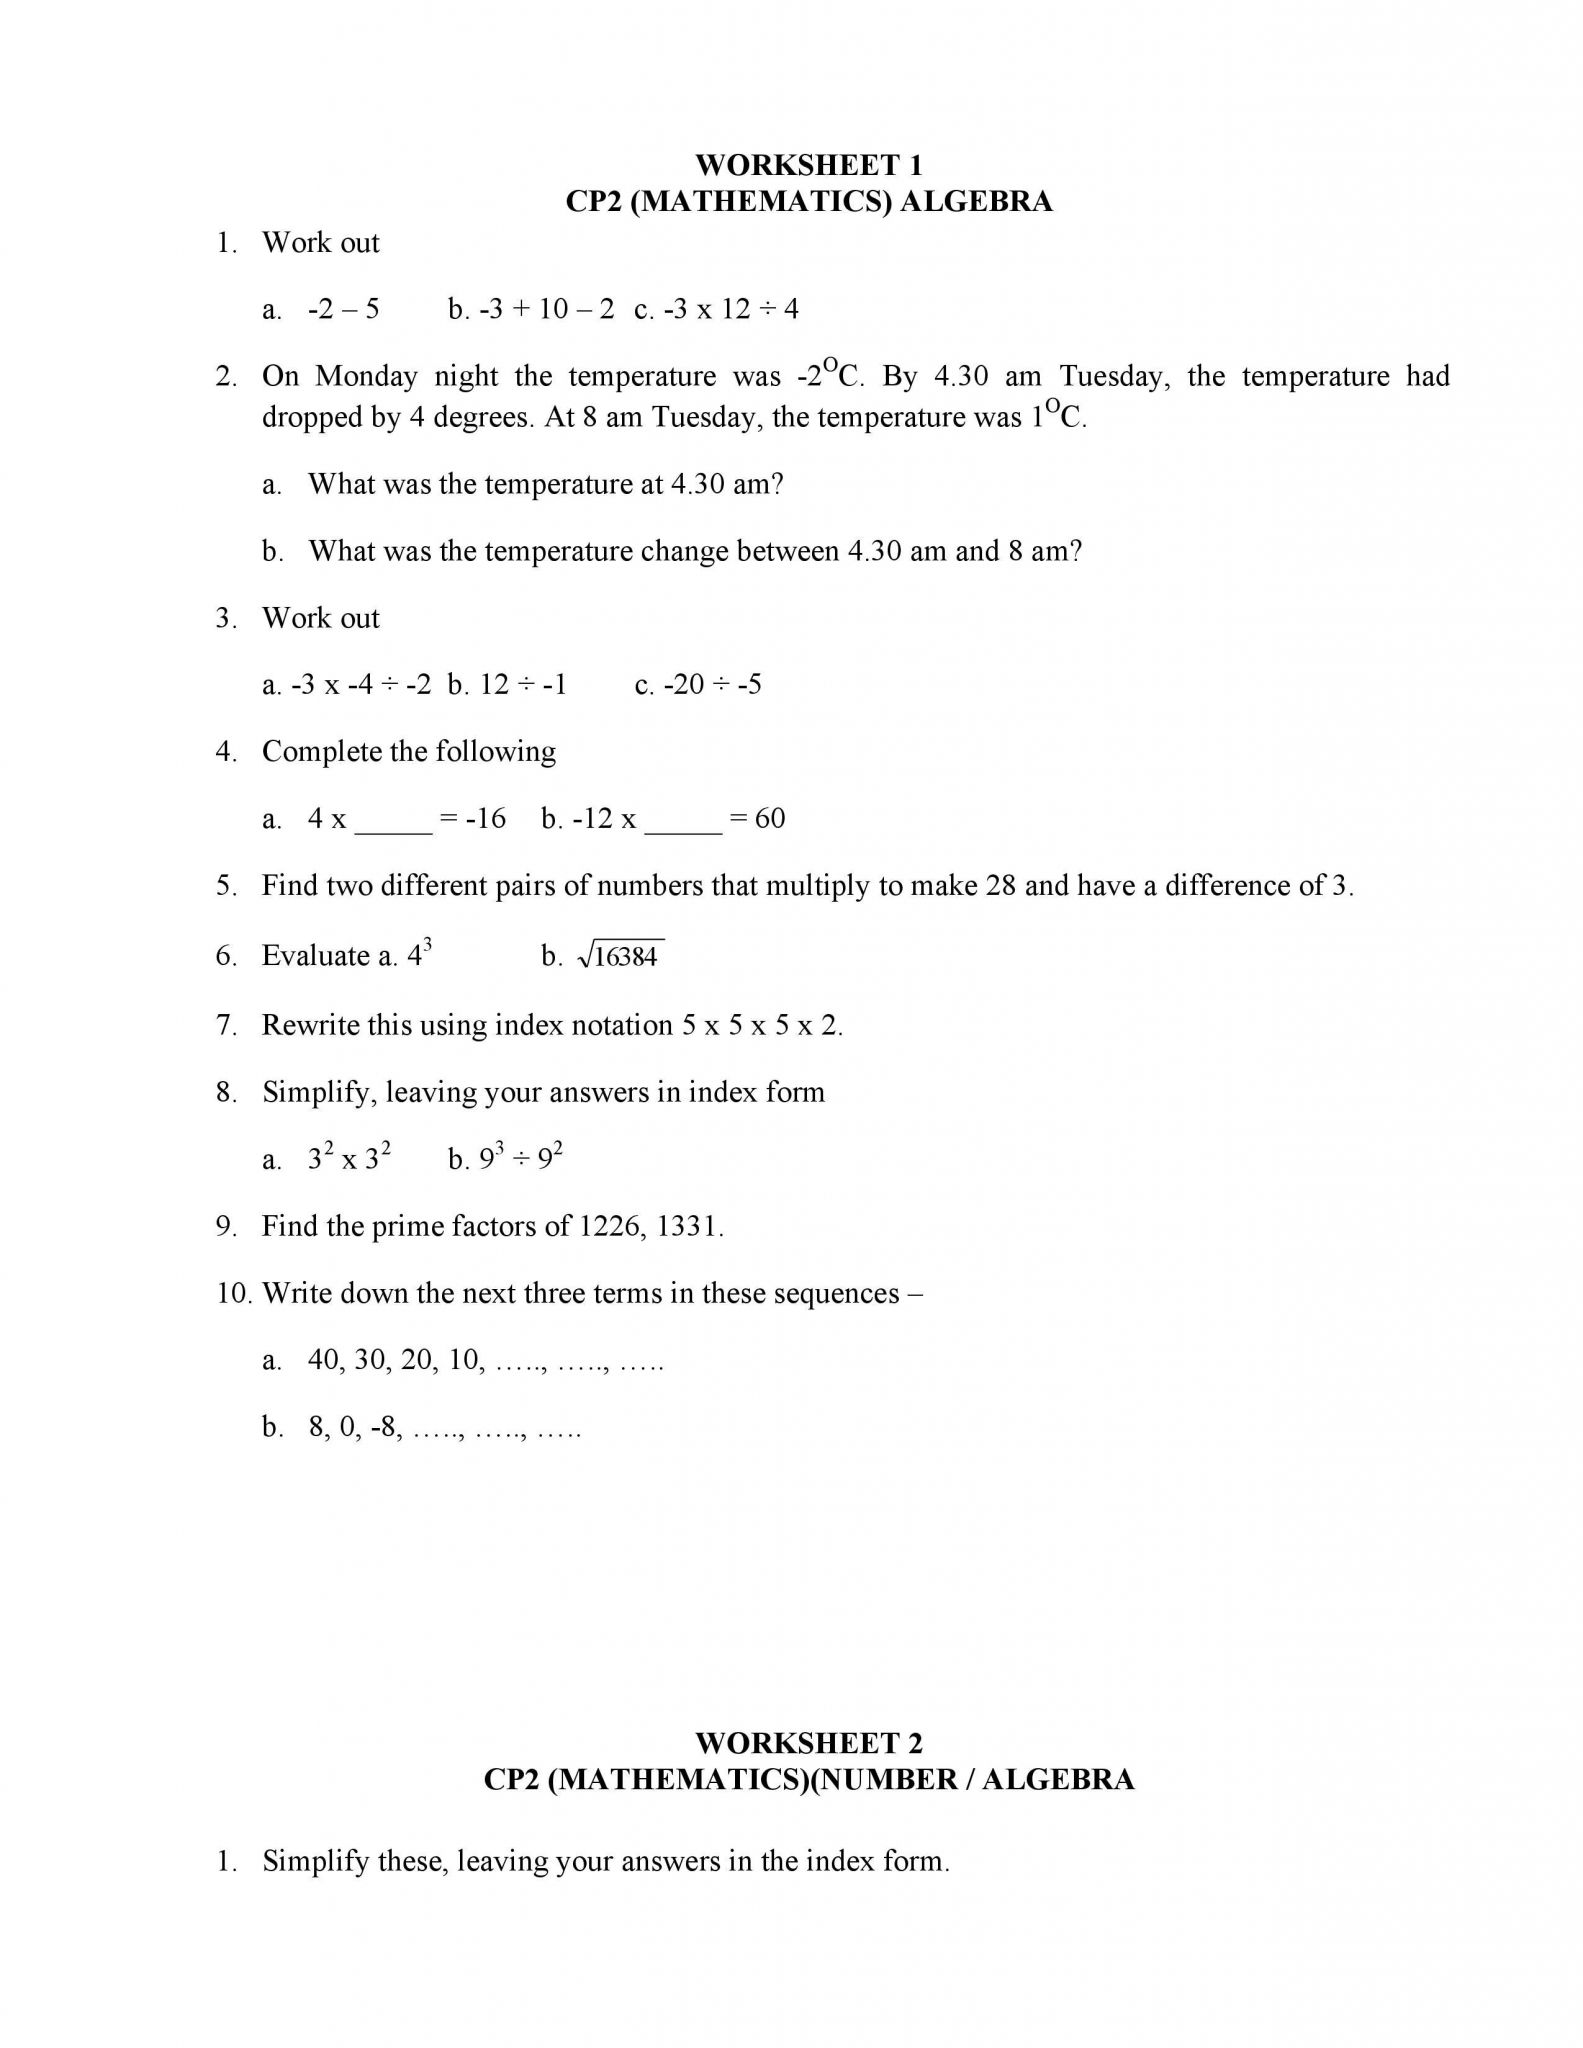 Arithmetic Sequences Worksheet 1 Answer Key